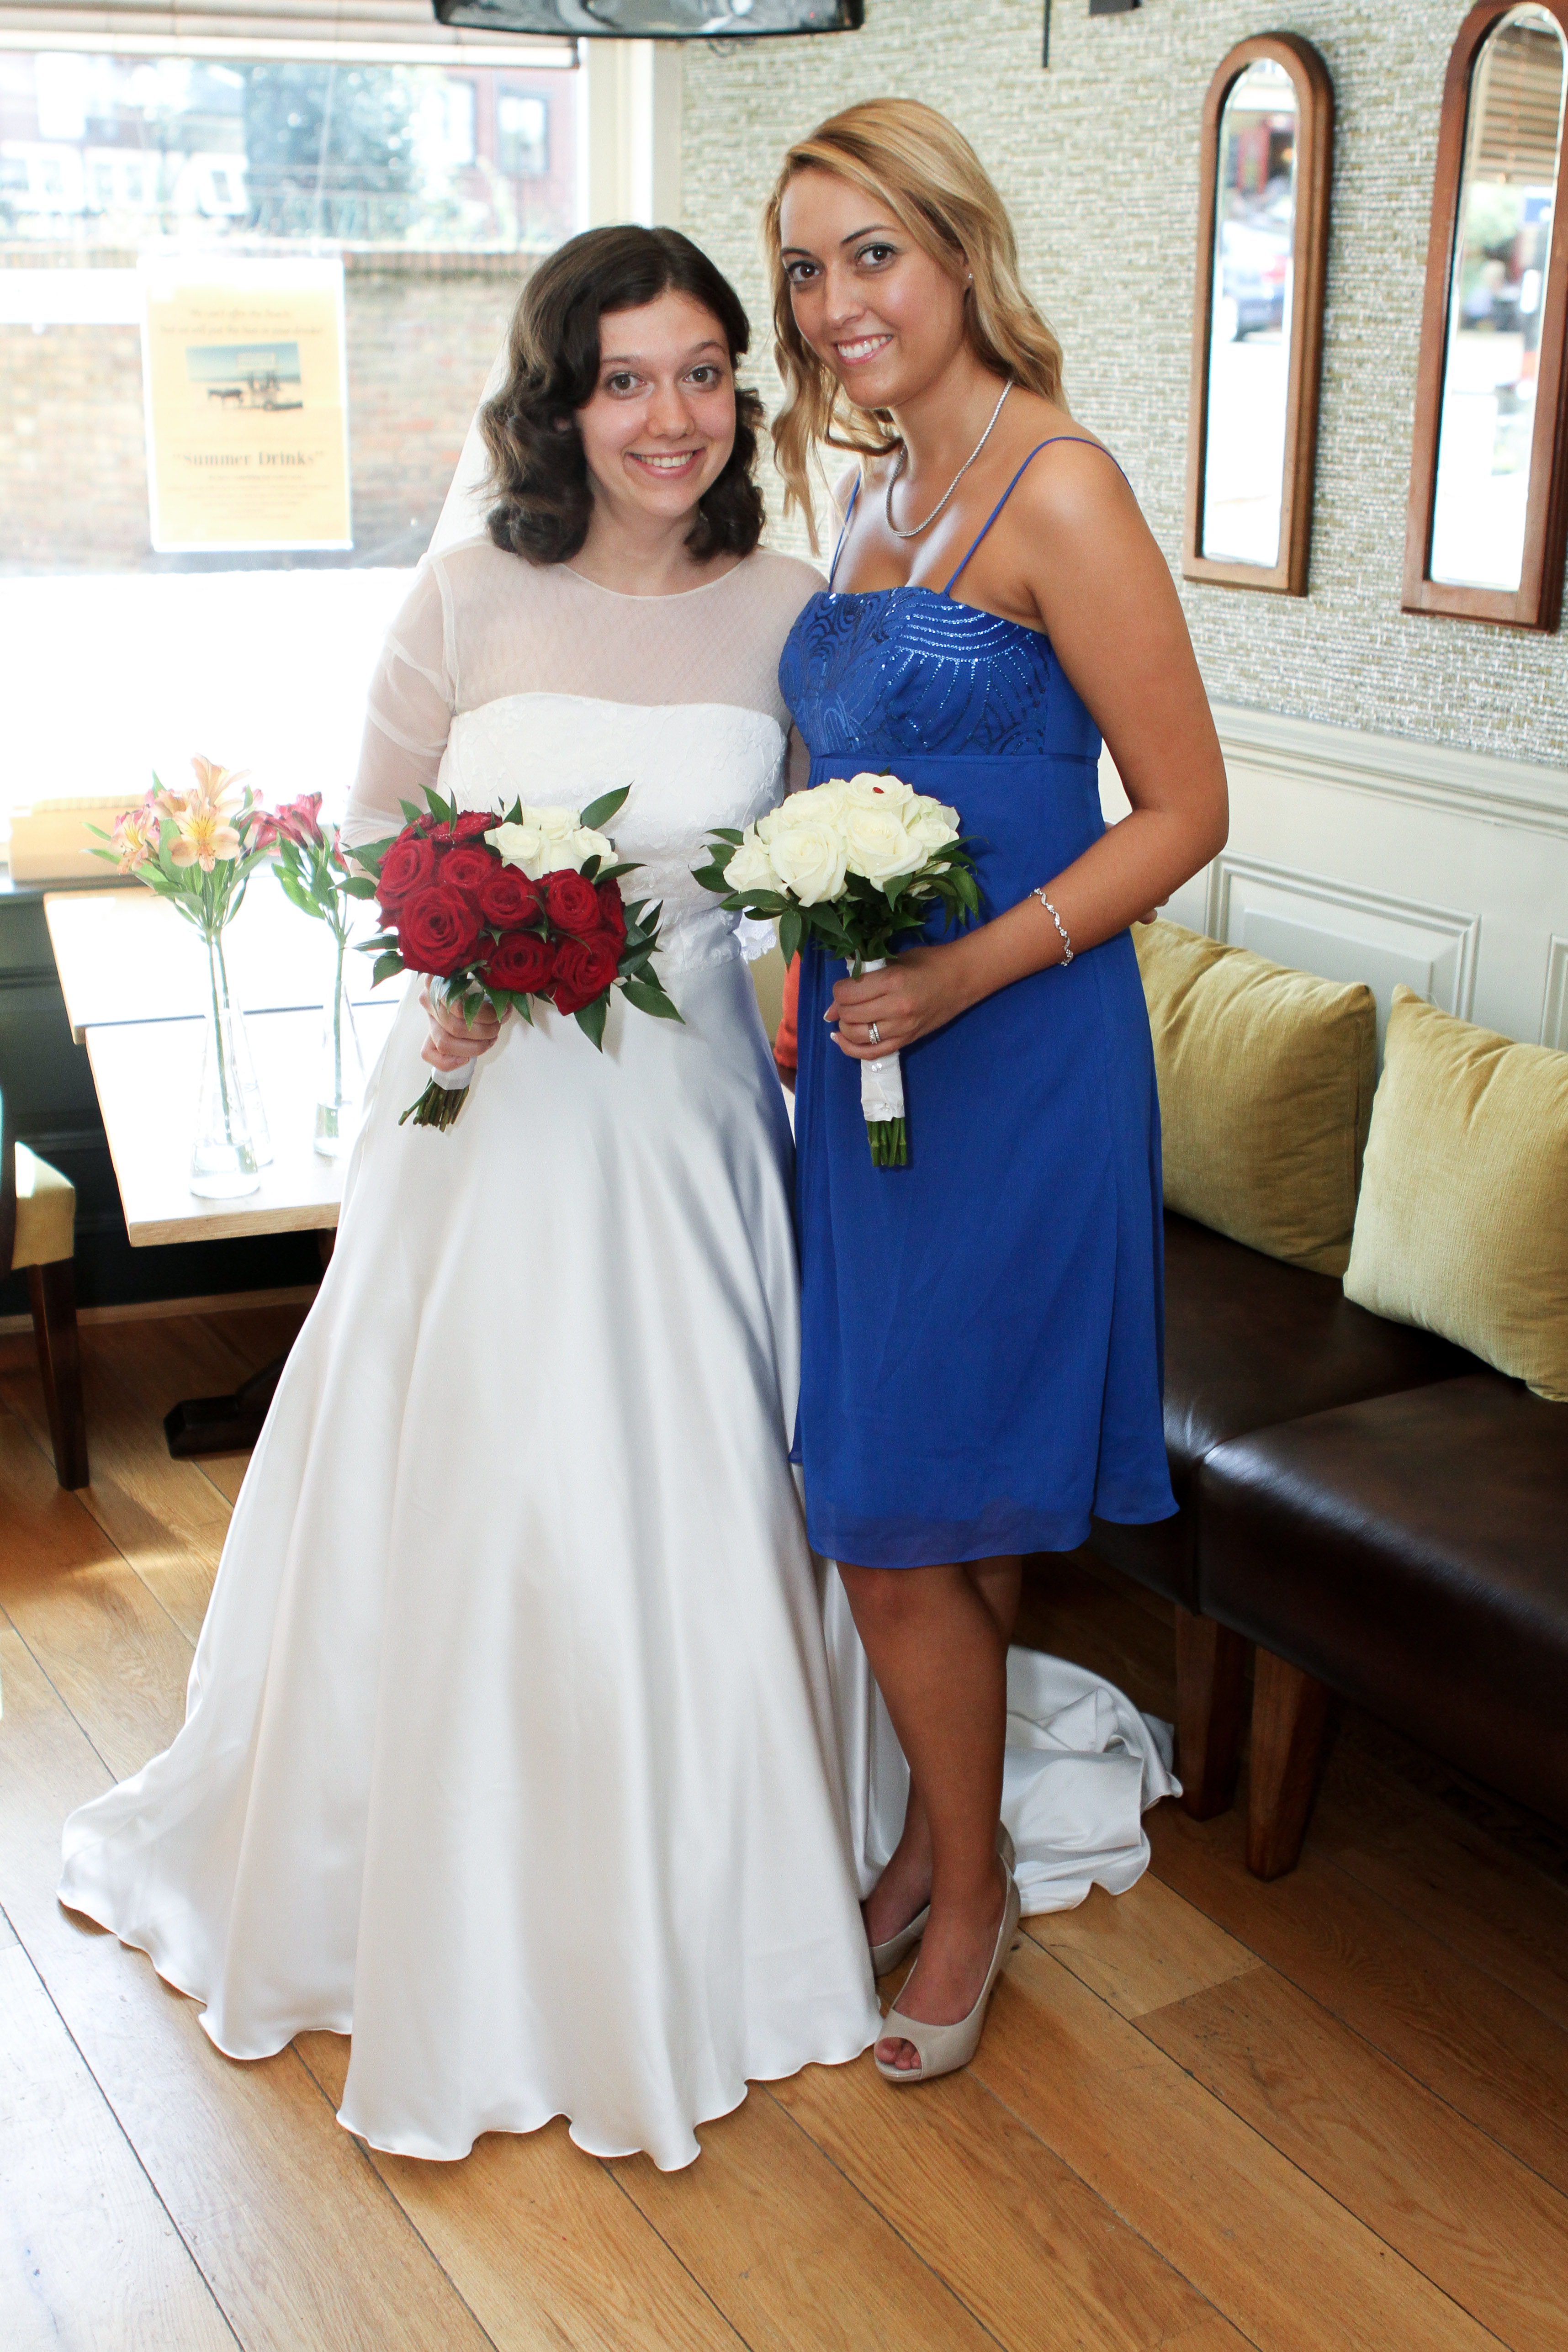 Tatyana in her wedding dress, smiling alongside bridesmaid, Laura